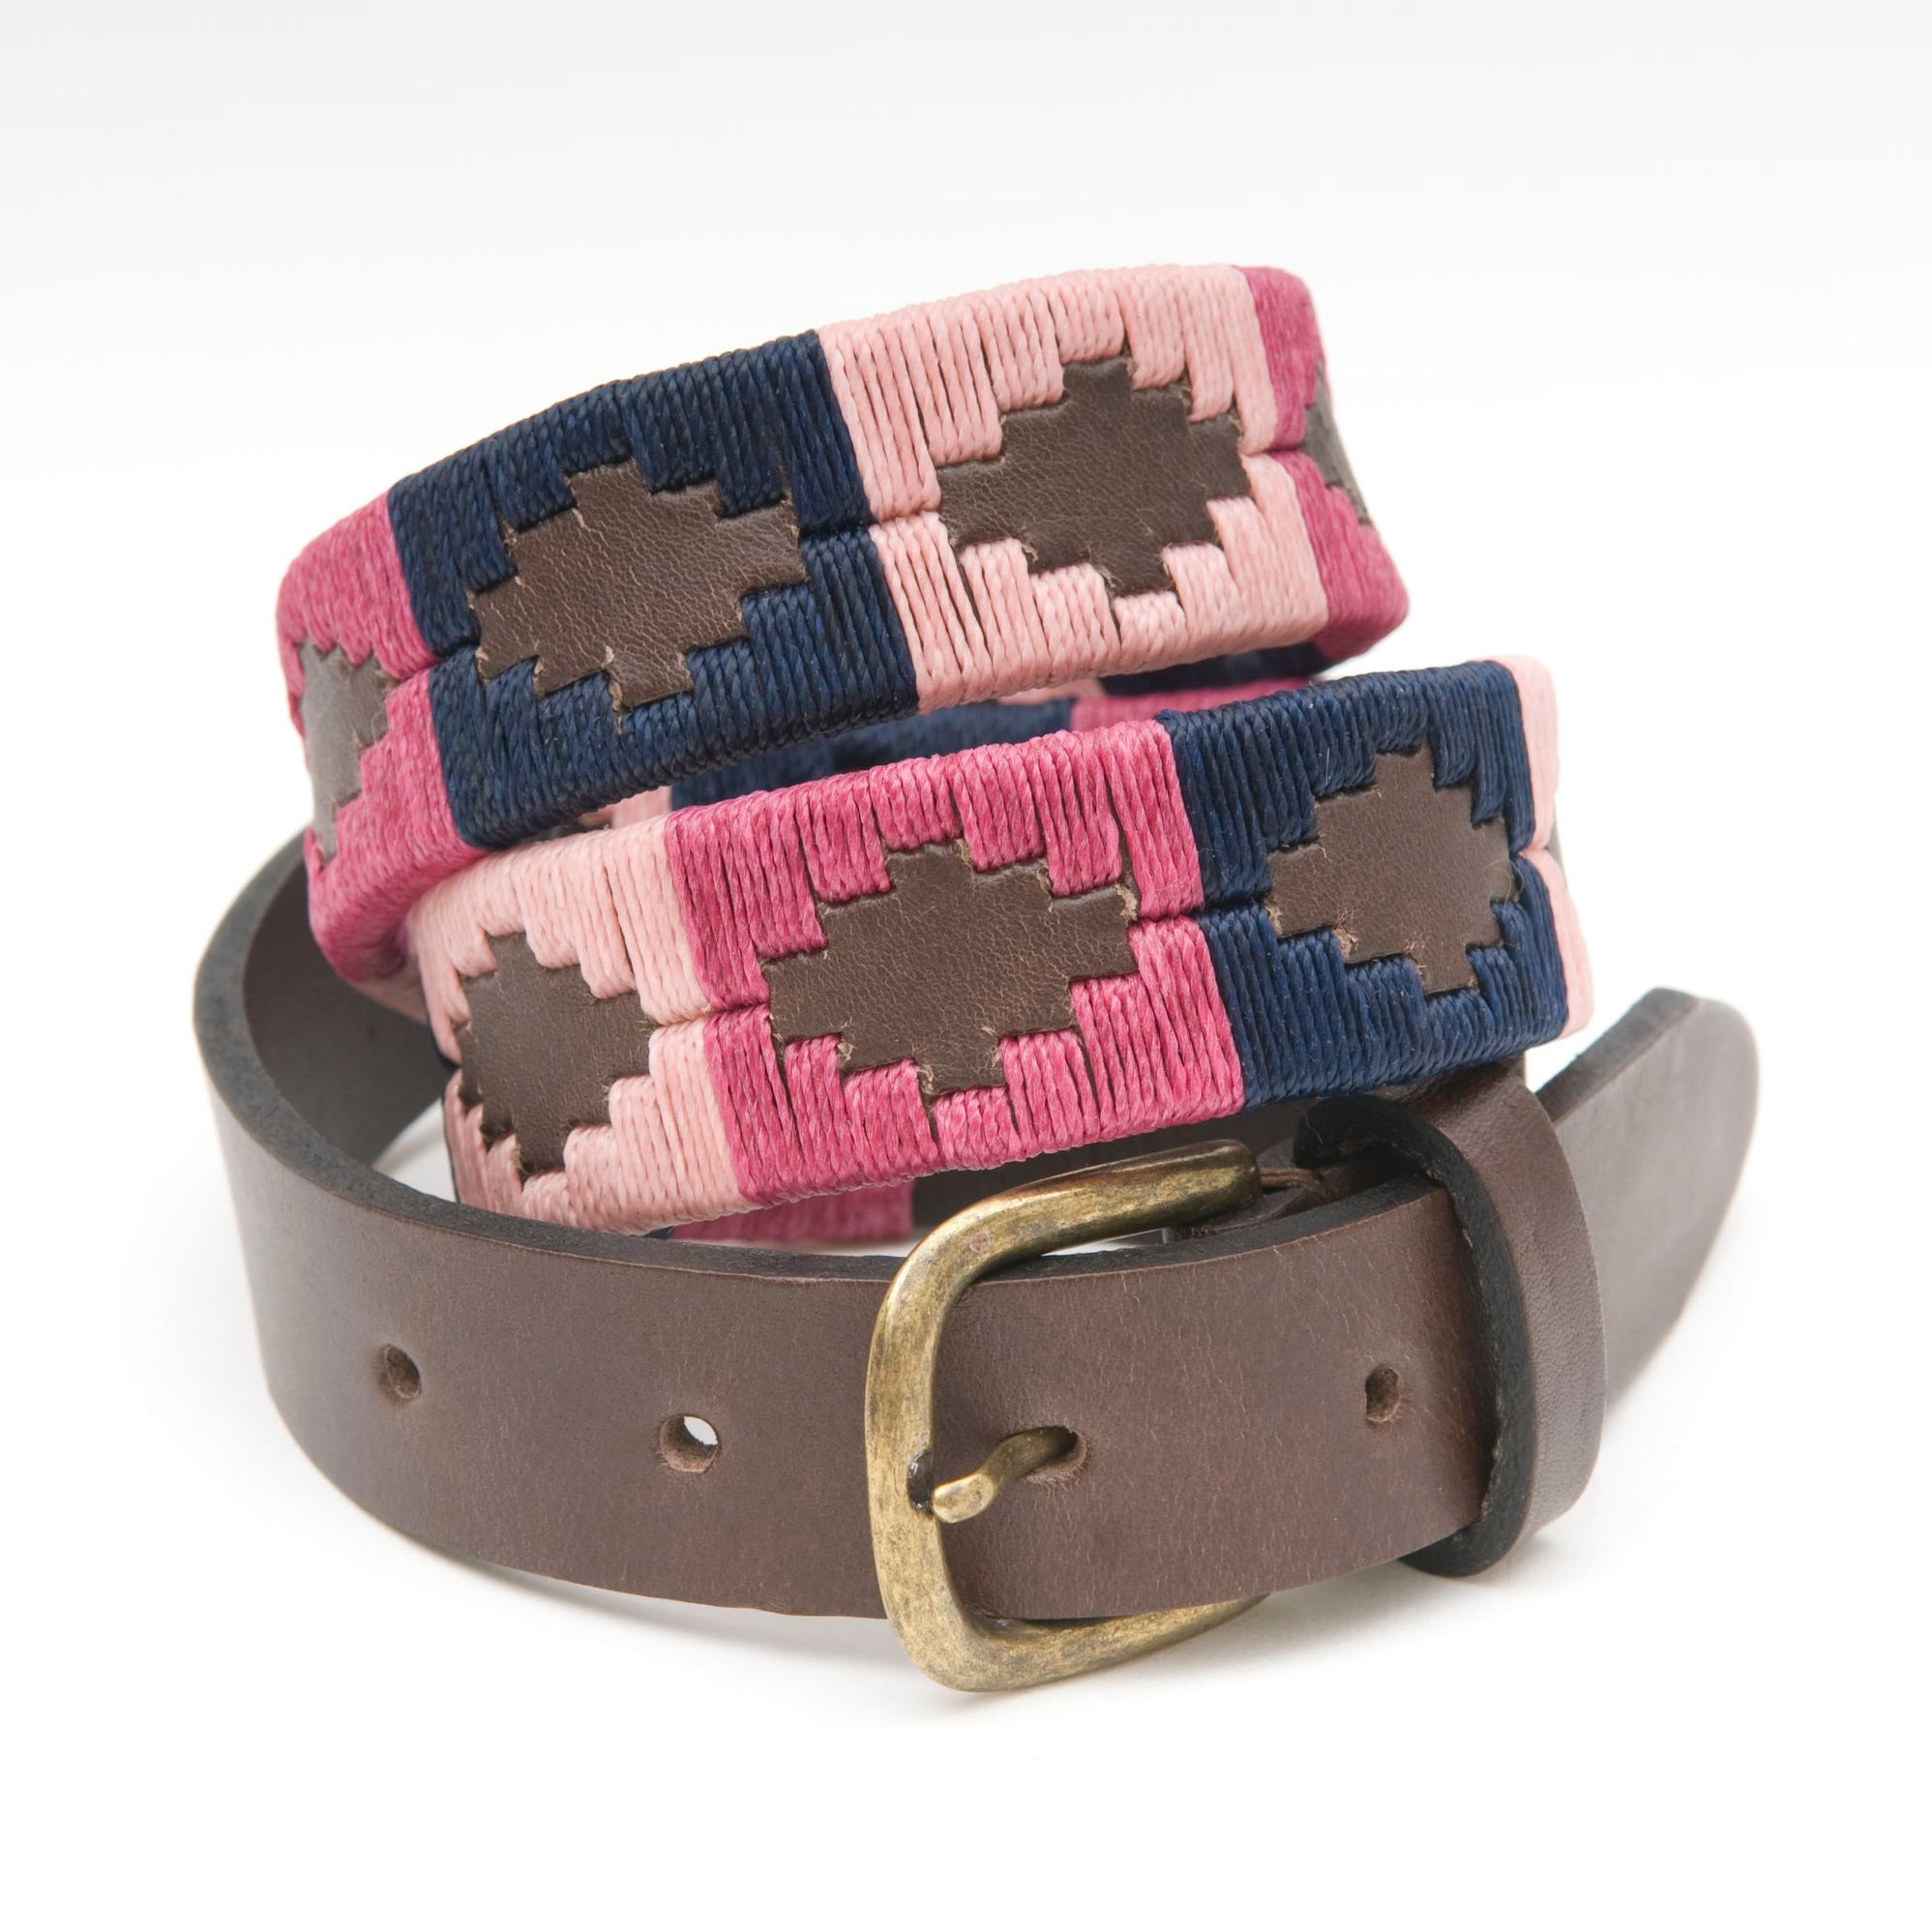 Pioneros Narrow Brown Polo Belt in Berry/Navy/Pink